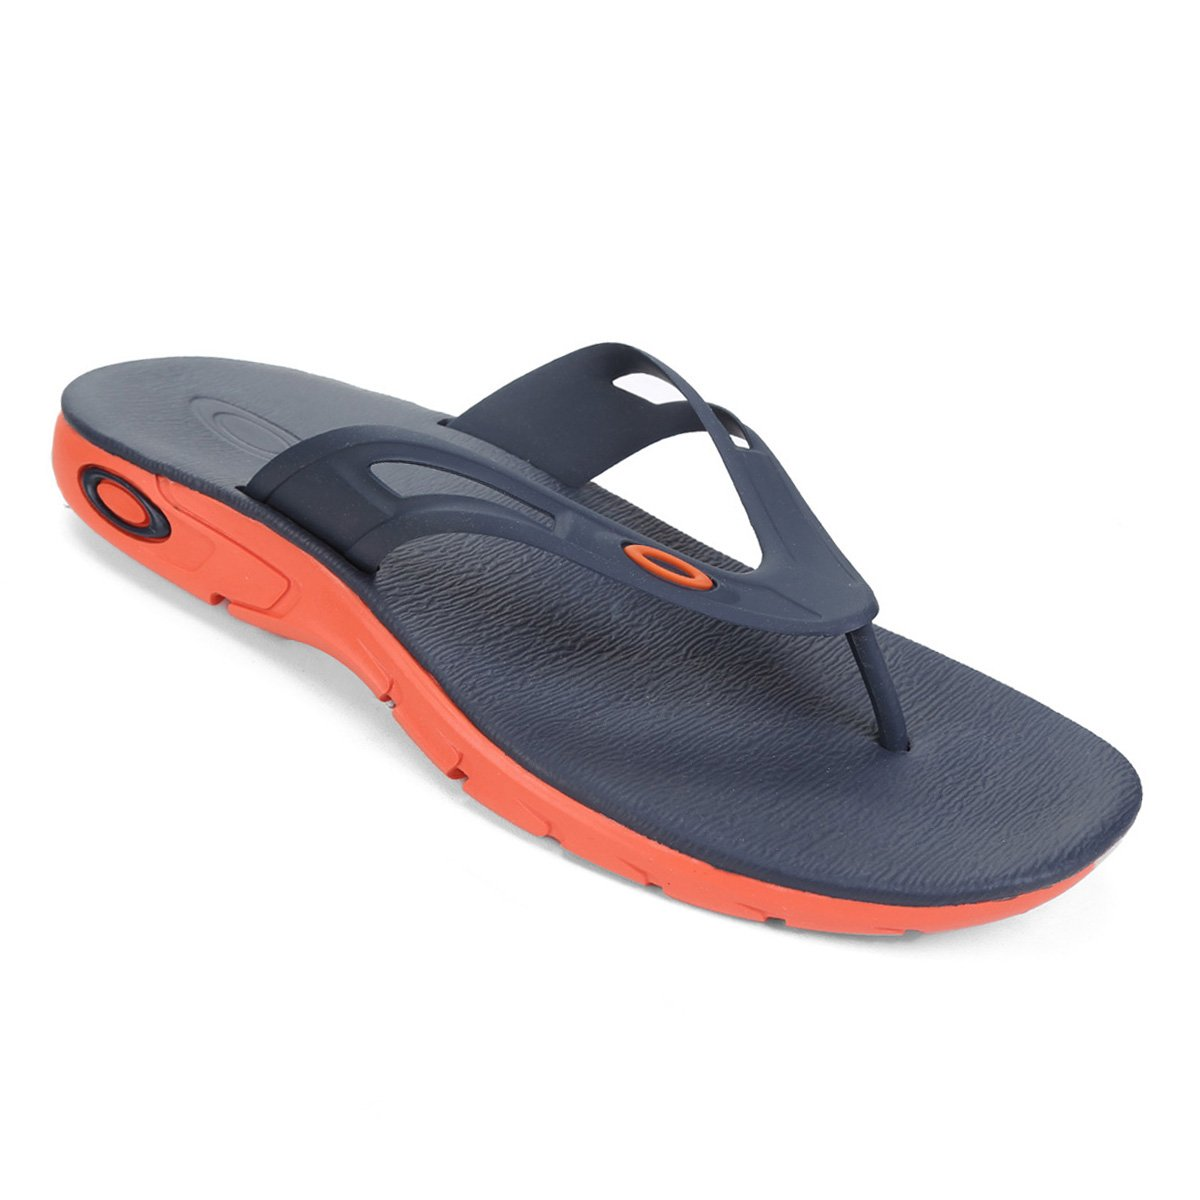 Rest 0 Oakley Azul 2 Masculino 2 Chinelo Oakley Royal Oakley Azul Chinelo 0 Masculino Royal Rest Rest Chinelo P66nwx1